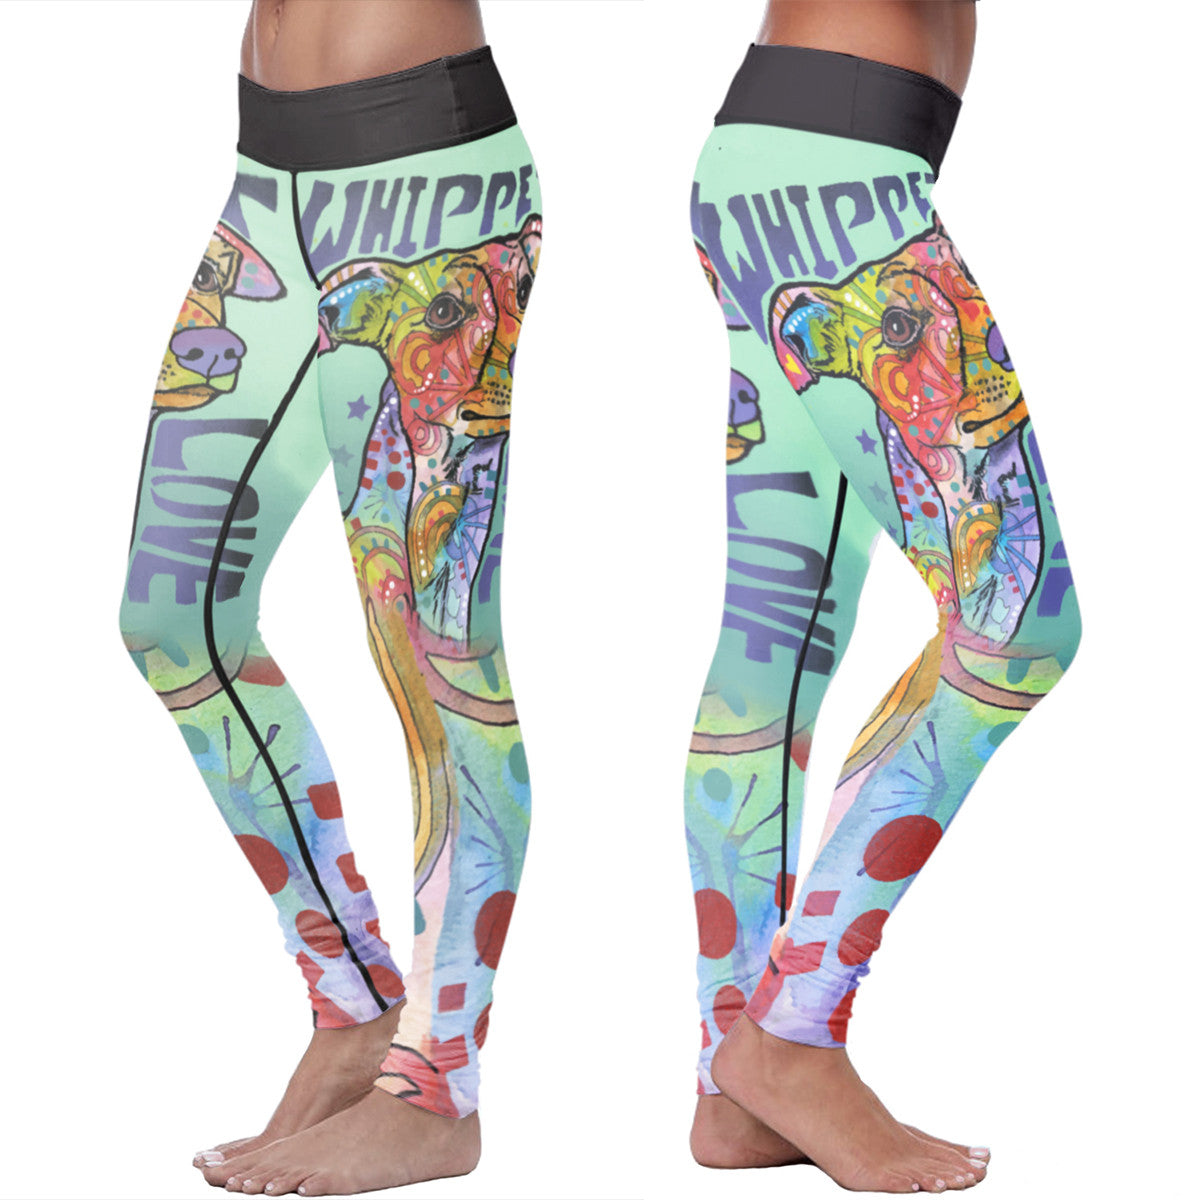 Whippet Leggings